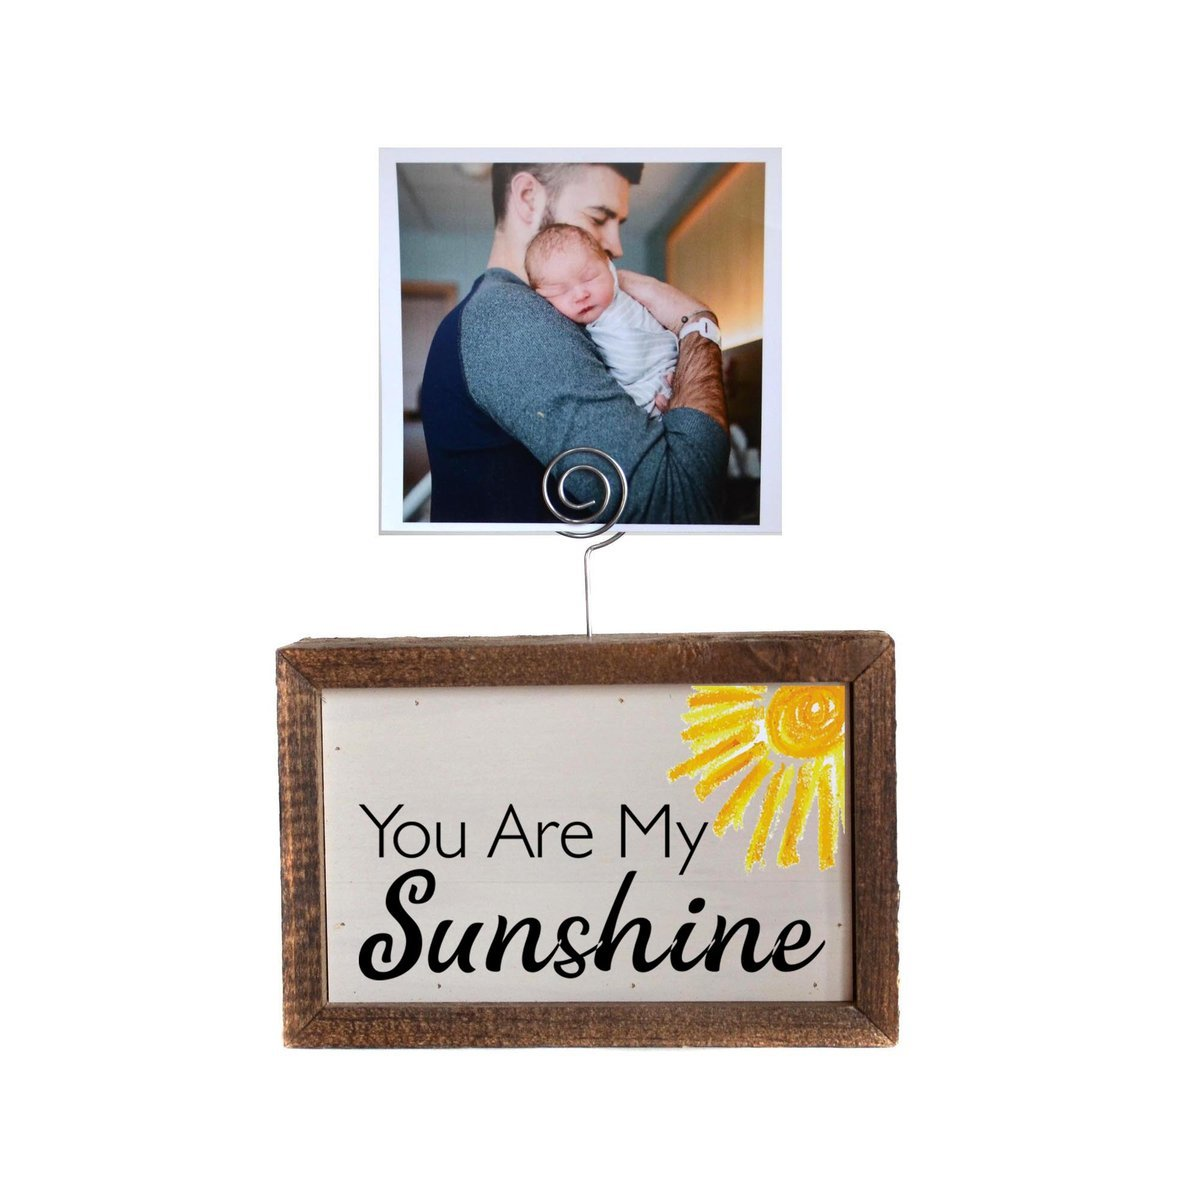 You Are My Sunshine Picture Block with Wire Picture Holder - 6 x 4 x 2 - by Driftwood Studios